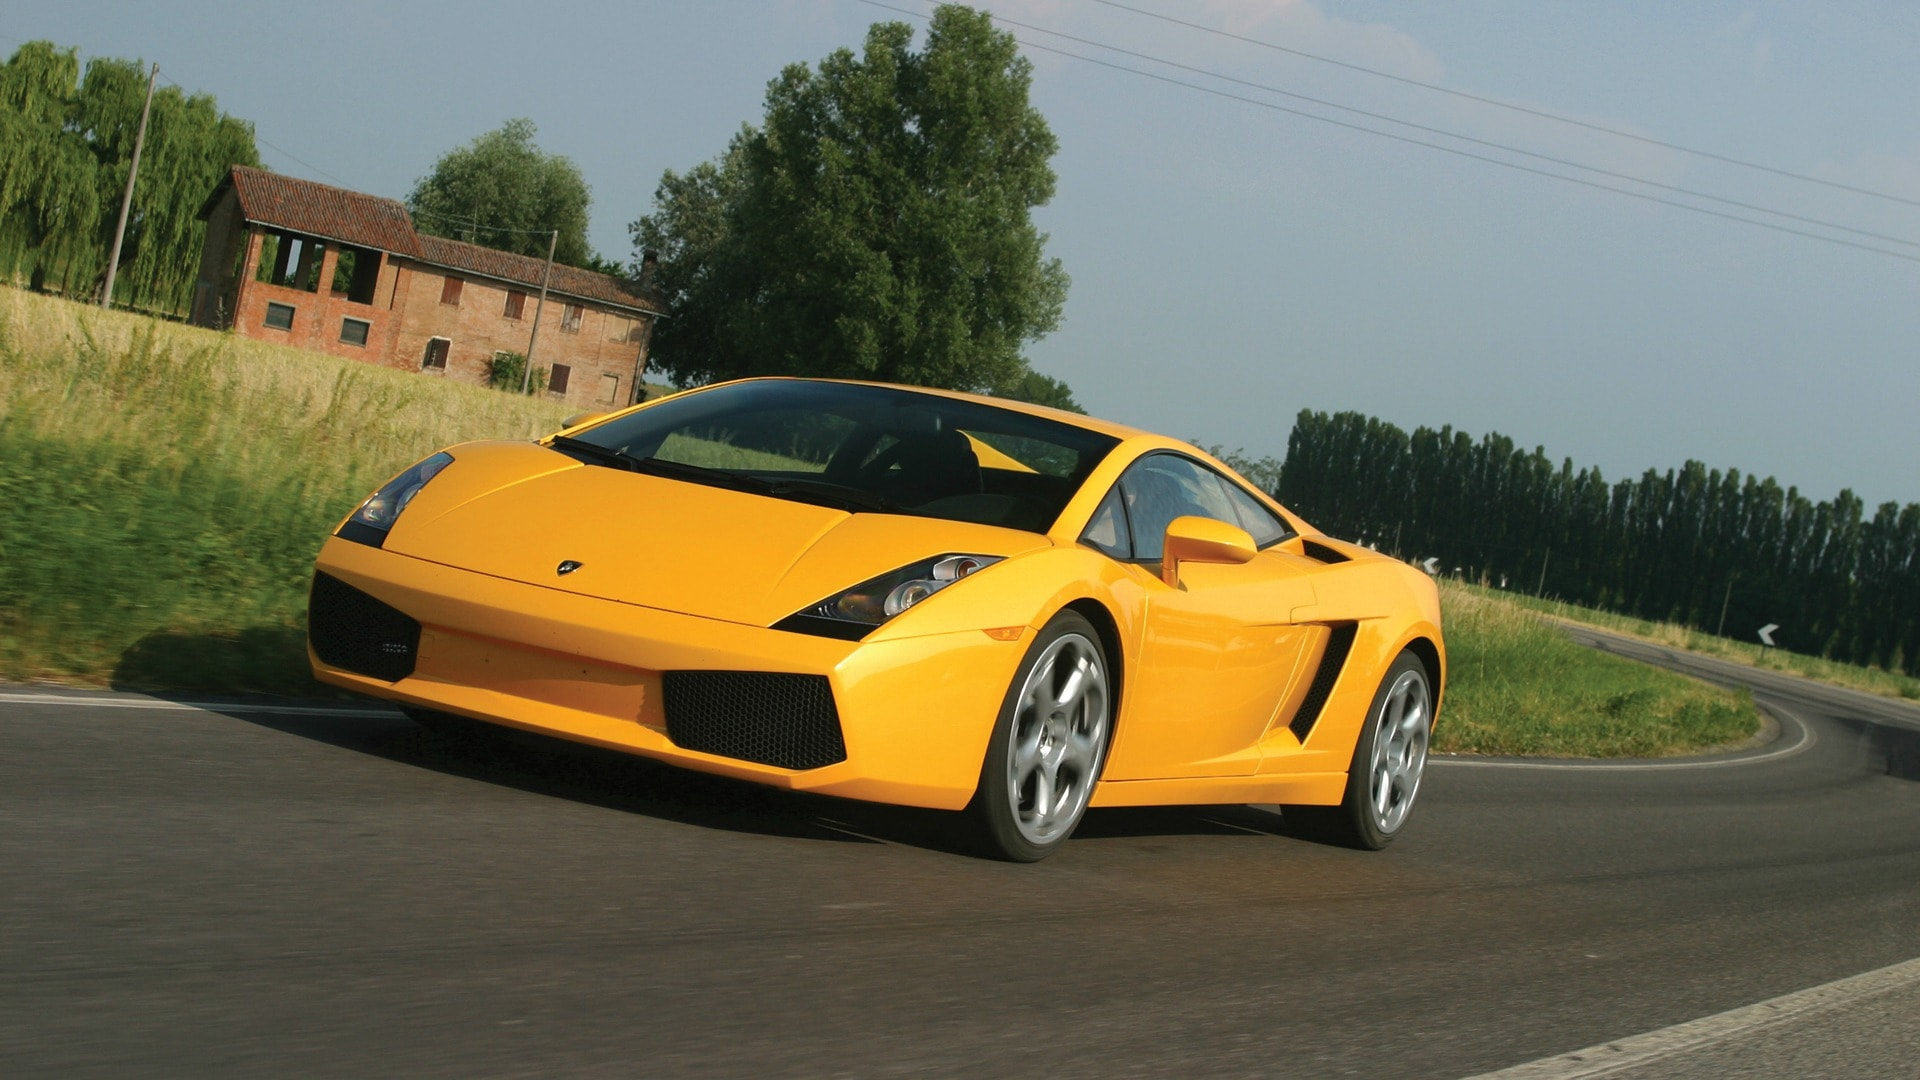 2003 Lamborghini Gallardo Backgrounds